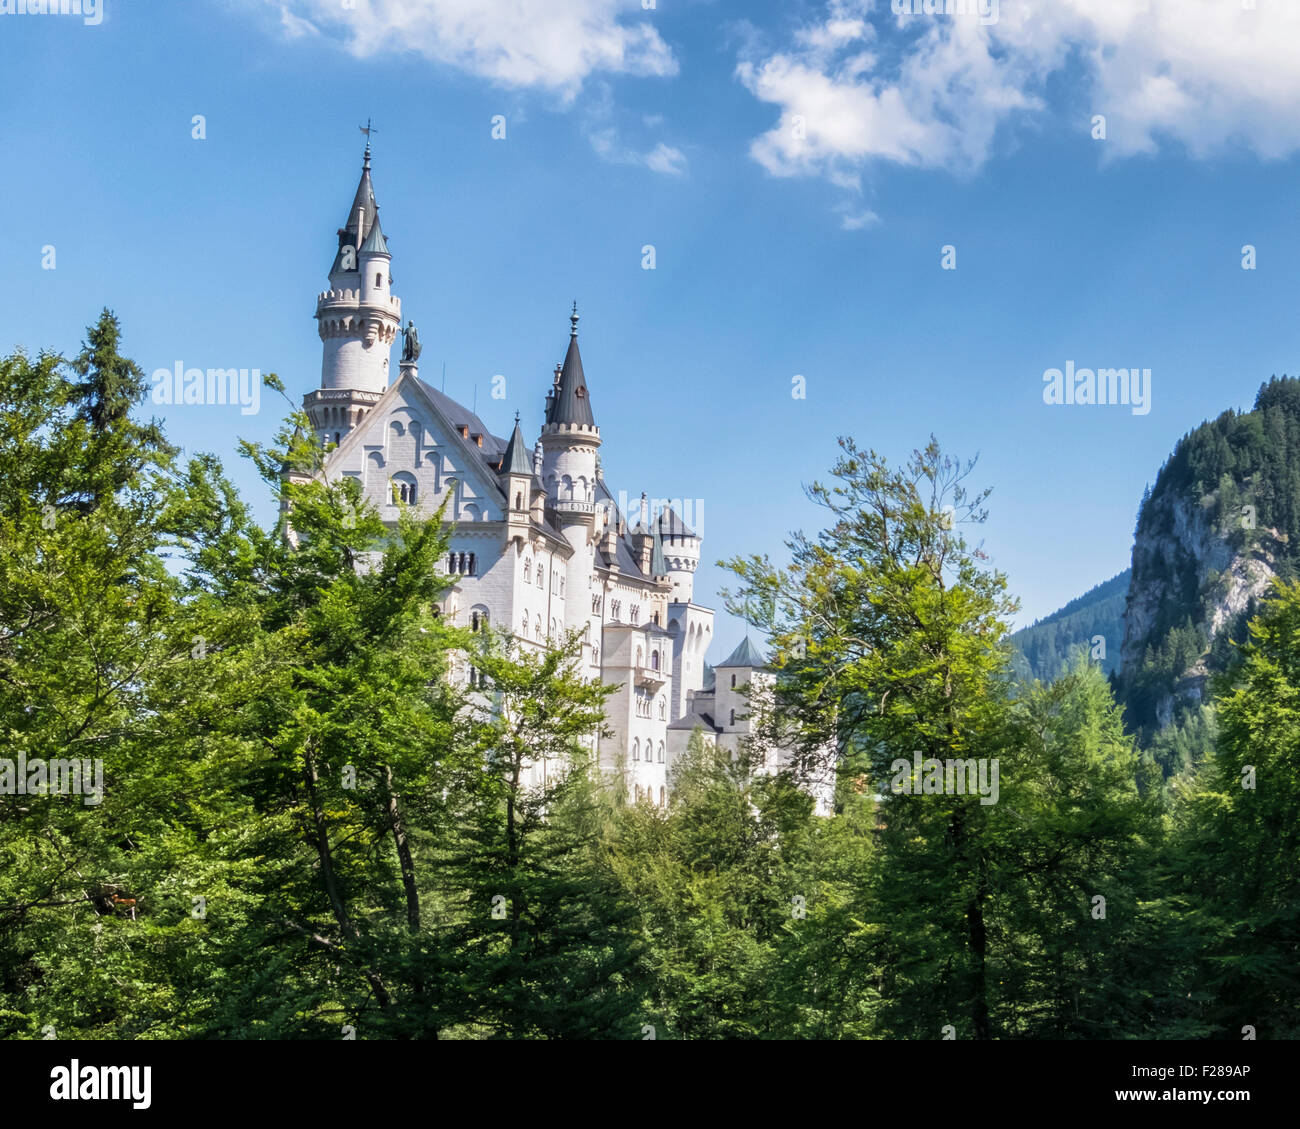 Neuschwanstein castle, schloss, Gothic palace built by King Ludwig ll above Hohenschwangaü Village, Schwangau, - Stock Image